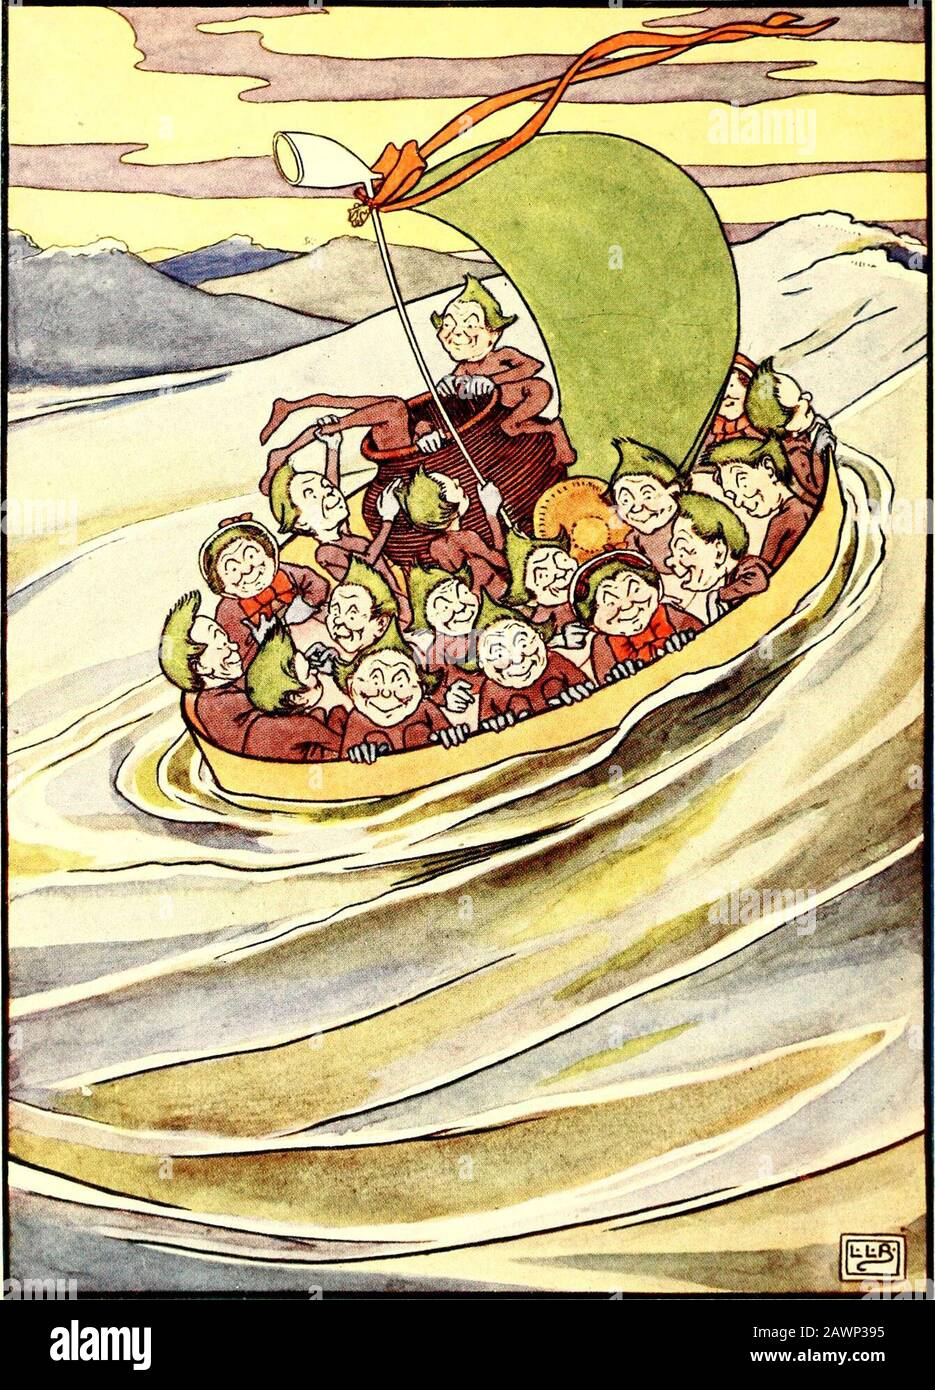 197 1 Stock Photos 197 1 Stock Images Page 3 Alamy - M Und Ms Torte